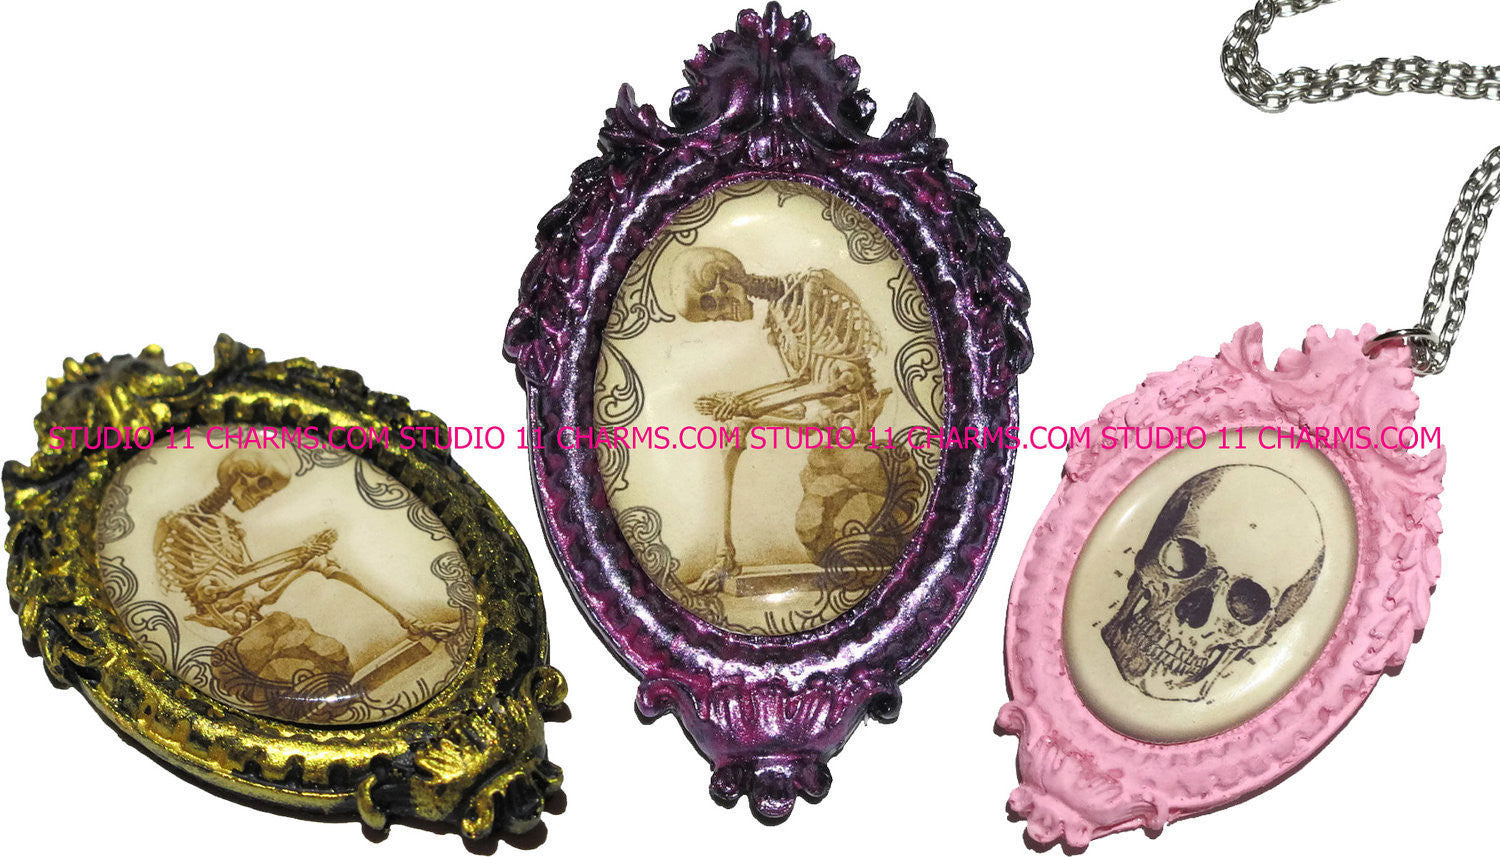 40x30, 18x25, 13X18 Resin Cameo LOW DOME Cabochon. Abraham Lincoln 1